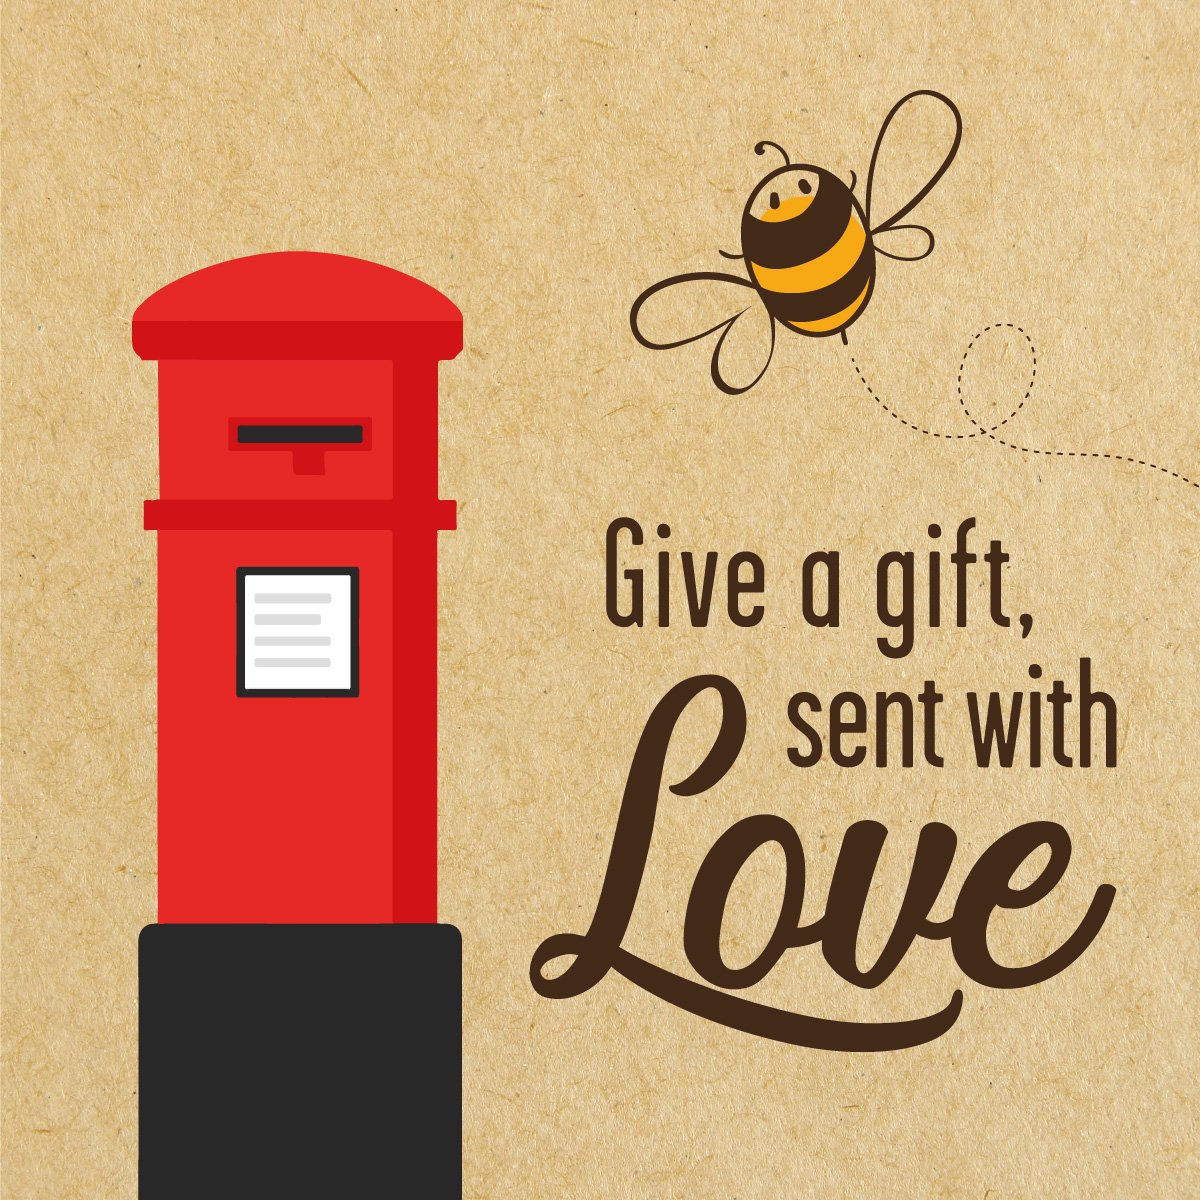 Betsy Bee & Letterbox - Give a Gift, sent with love